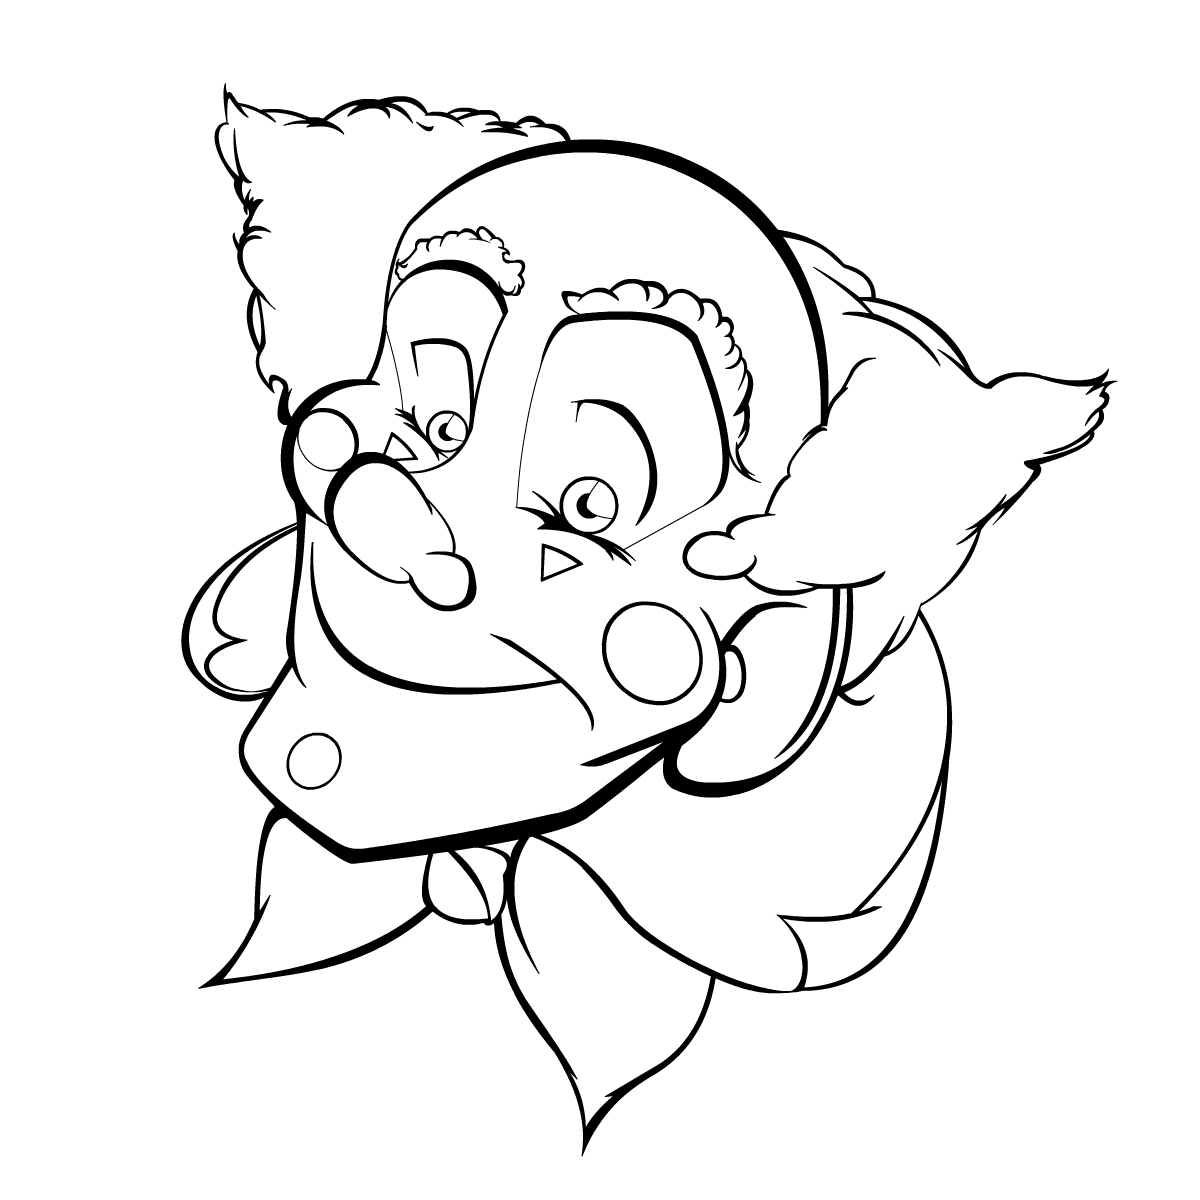 coloring pages clowns - happy clown by aaronmizuno on deviantart